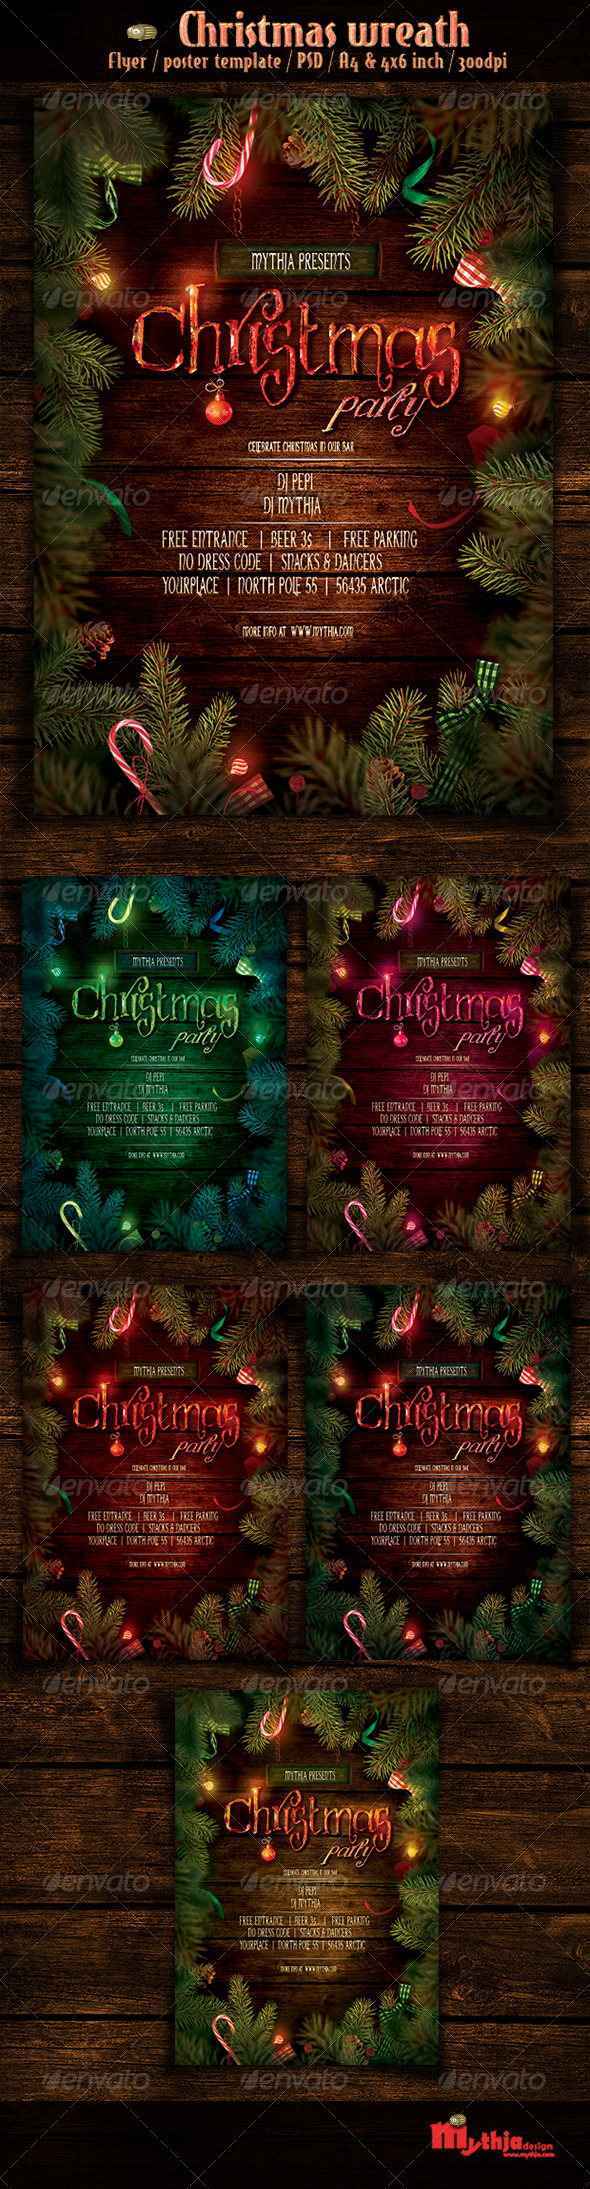 Christmas Wreath - Event Flyer/Poster Template - Holidays Events